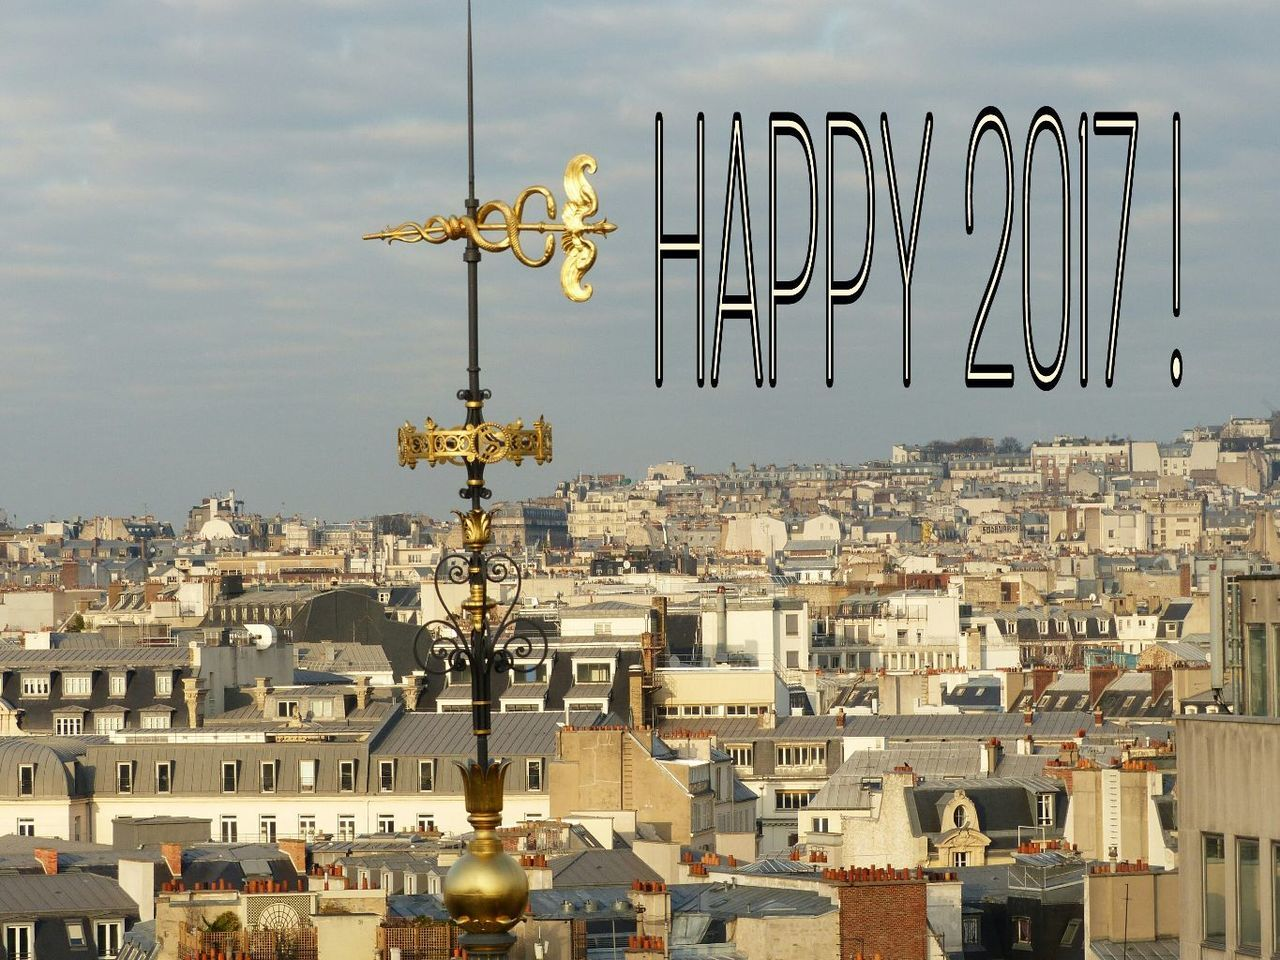 Happy New Year 2017 New Year Best Wishes To Everyone! Bonne Annee 2017 Paris Je T Aime Parisisforlovers Cityscape Over The Roofs